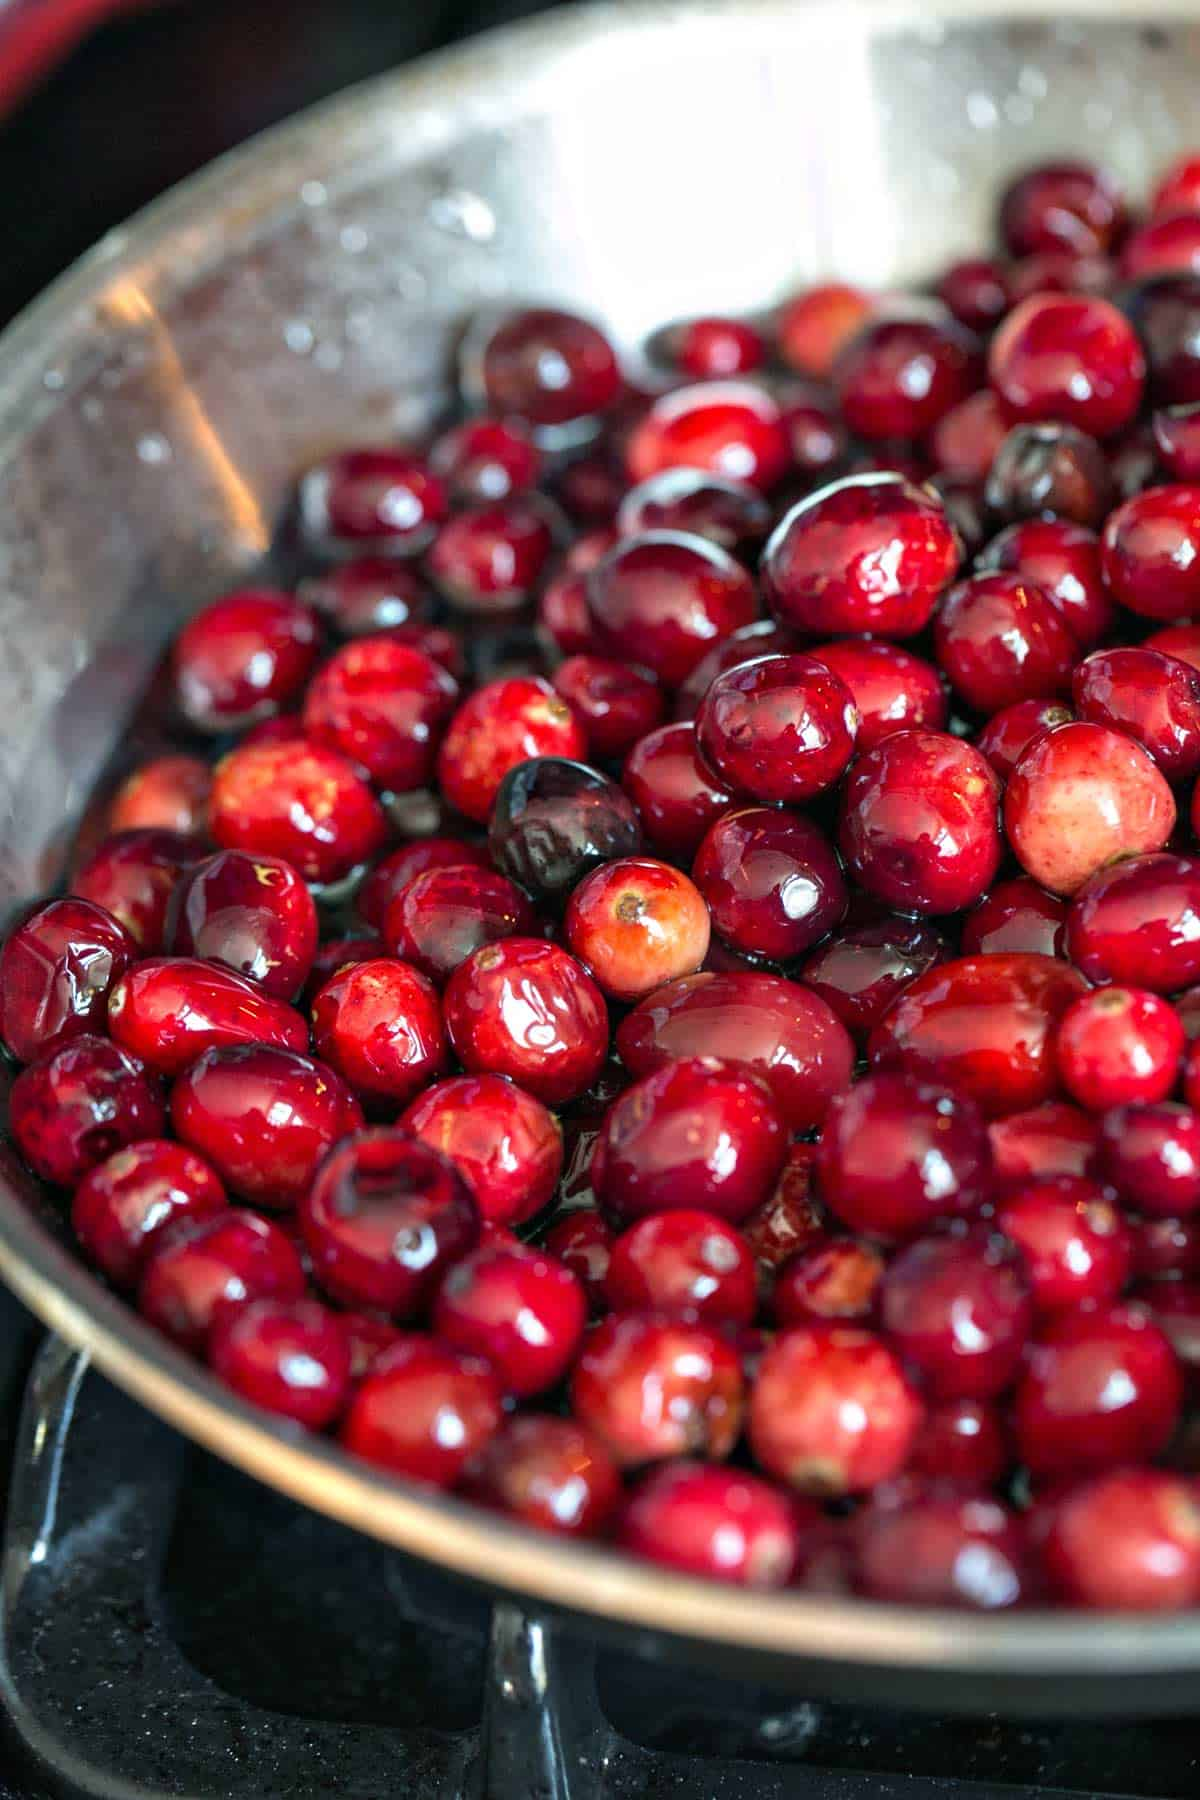 cranberries in a pot on the stove simmering in water